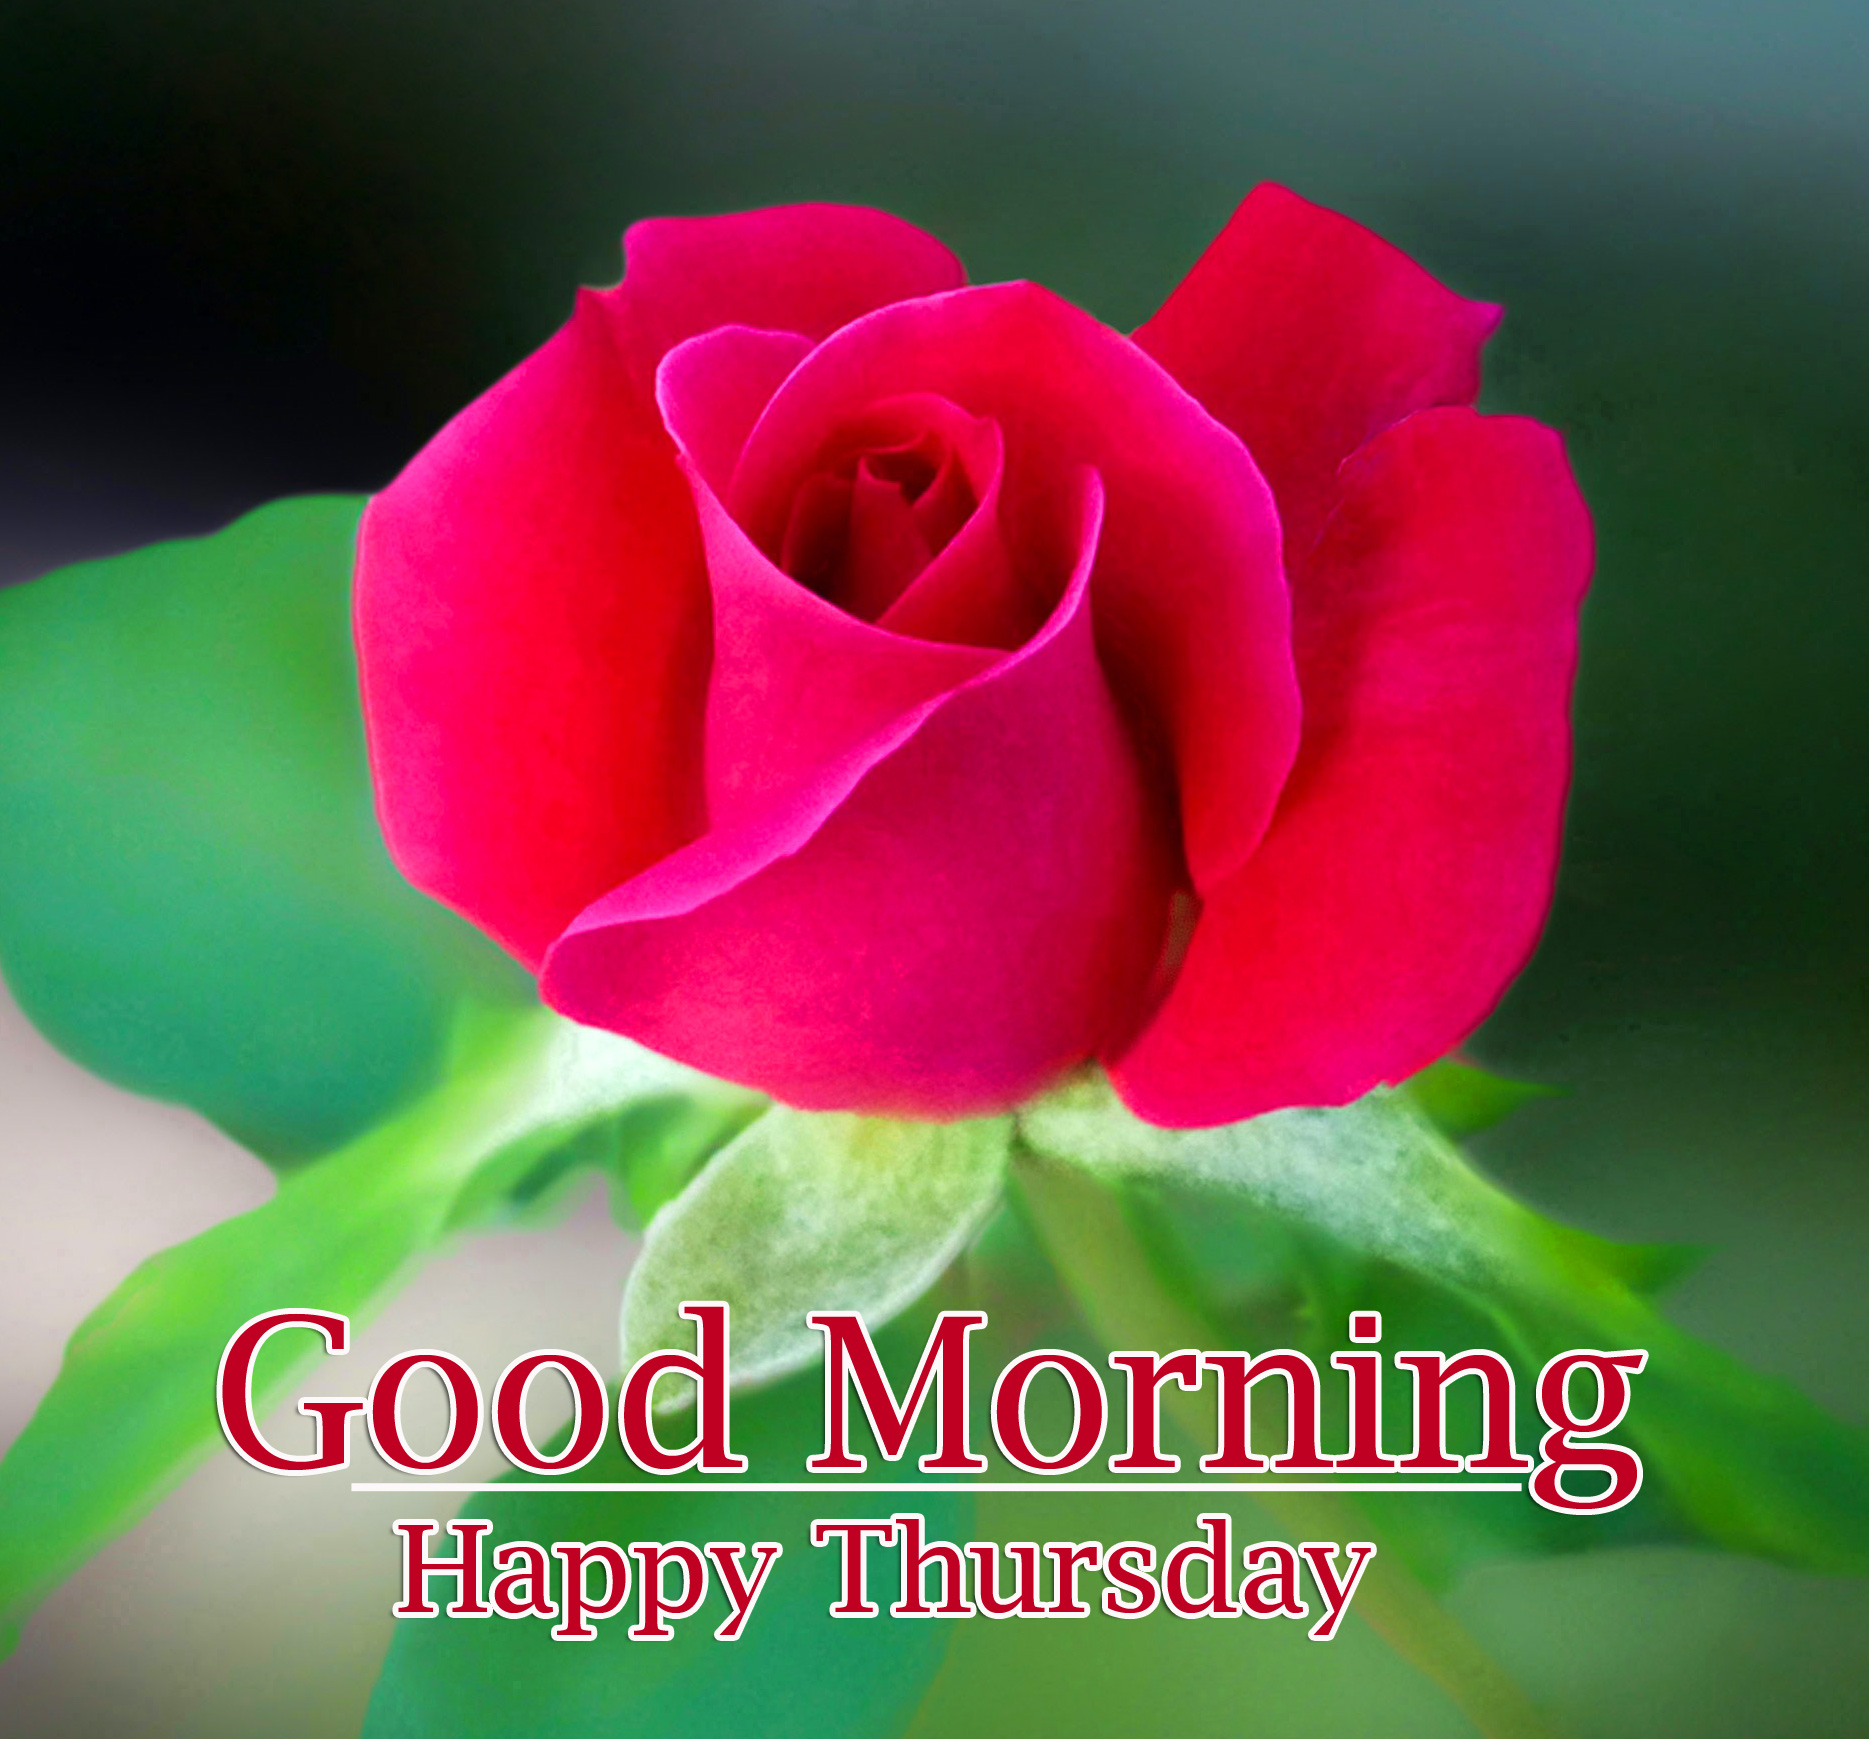 Good Morning Thursday Images Photo for Facebook